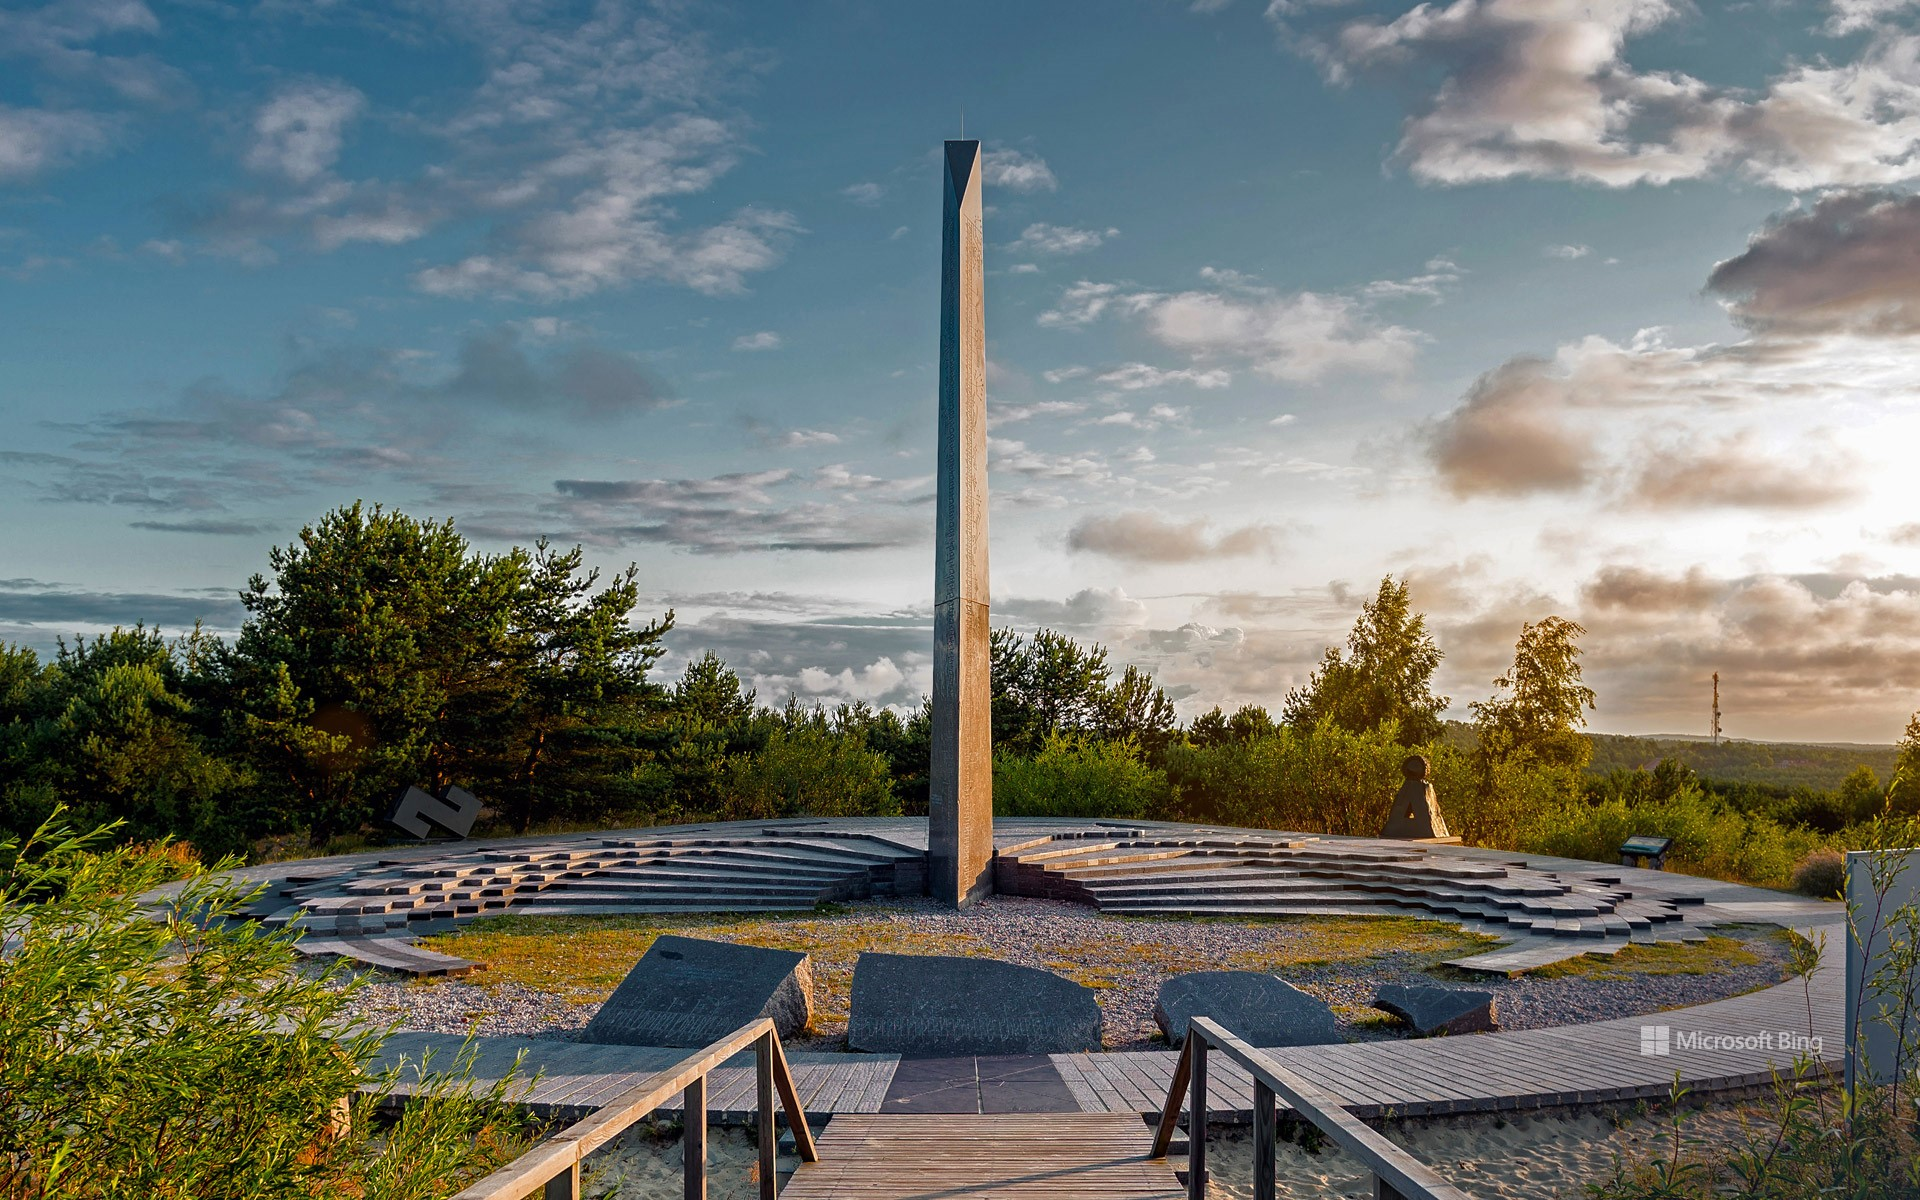 Sundial on Parnidis Dune, Curonian Spit, Lithuania